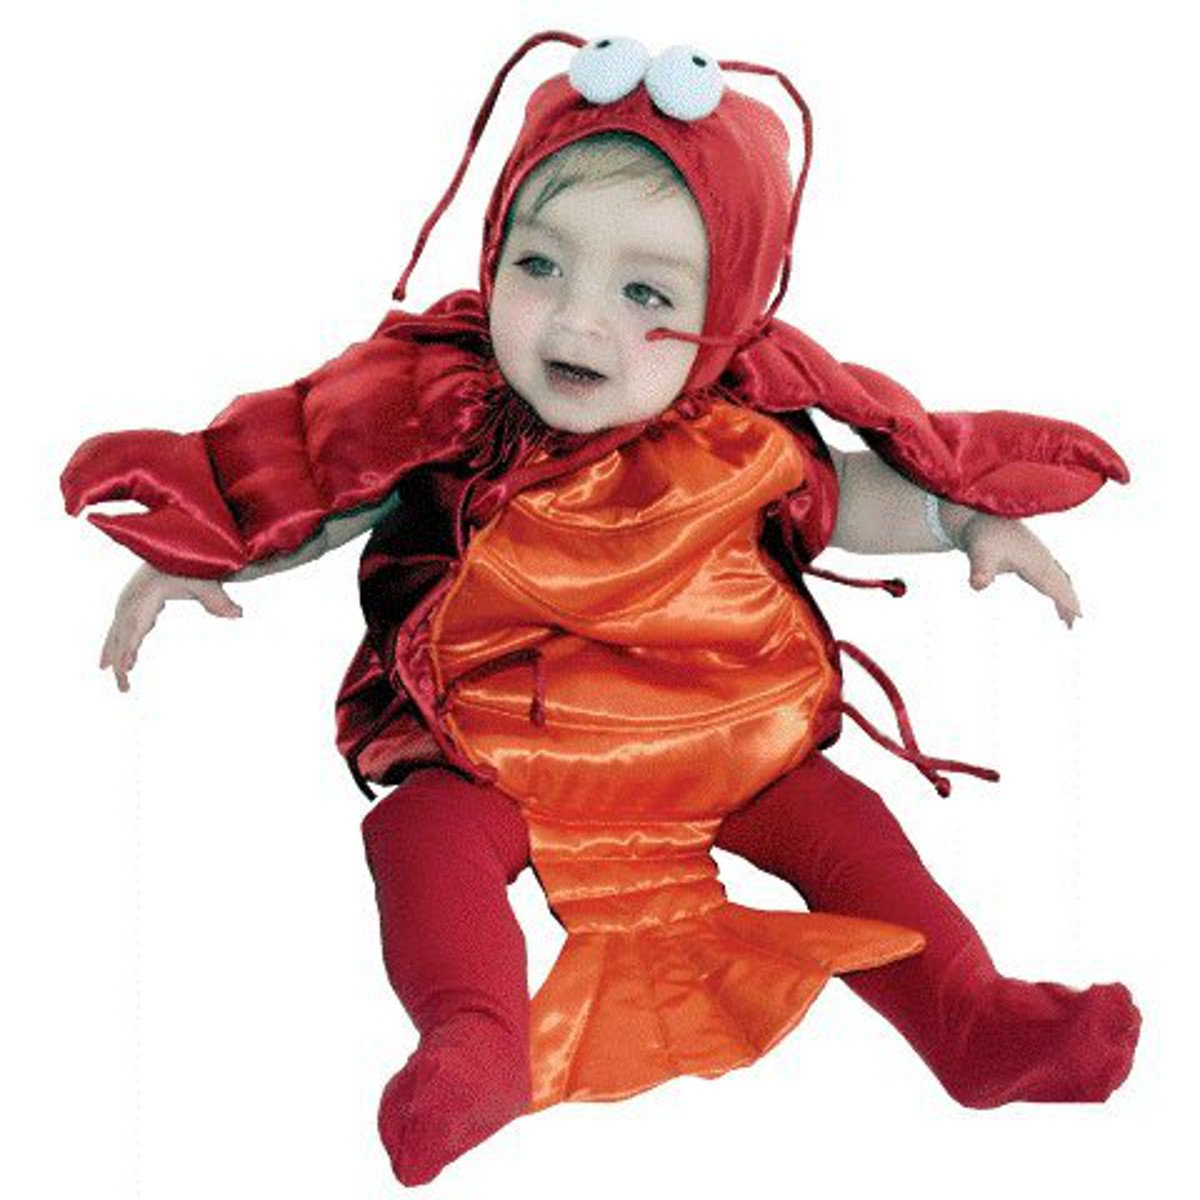 da191f4d6ee0 Amazon.com  Unique Infant Toddler Halloween Costume   Lobster Baby Costume   Clothing